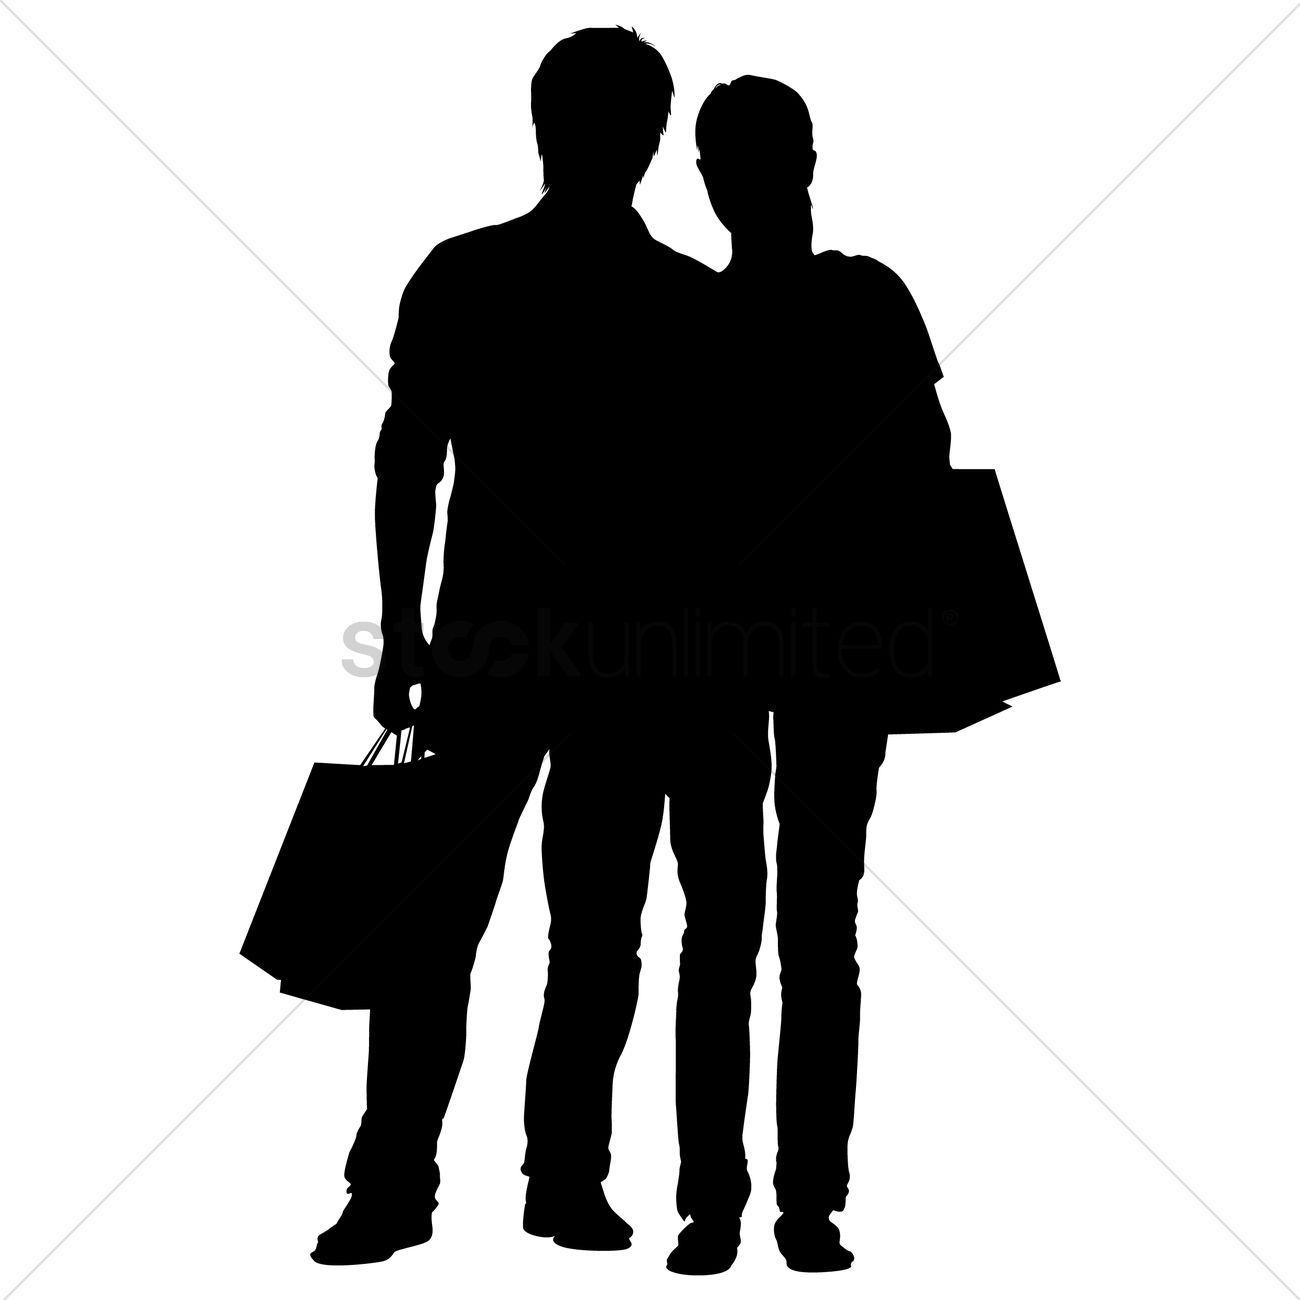 1300x1300 Silhouette Of A Man And Woman With Shopping Bags Vector Image